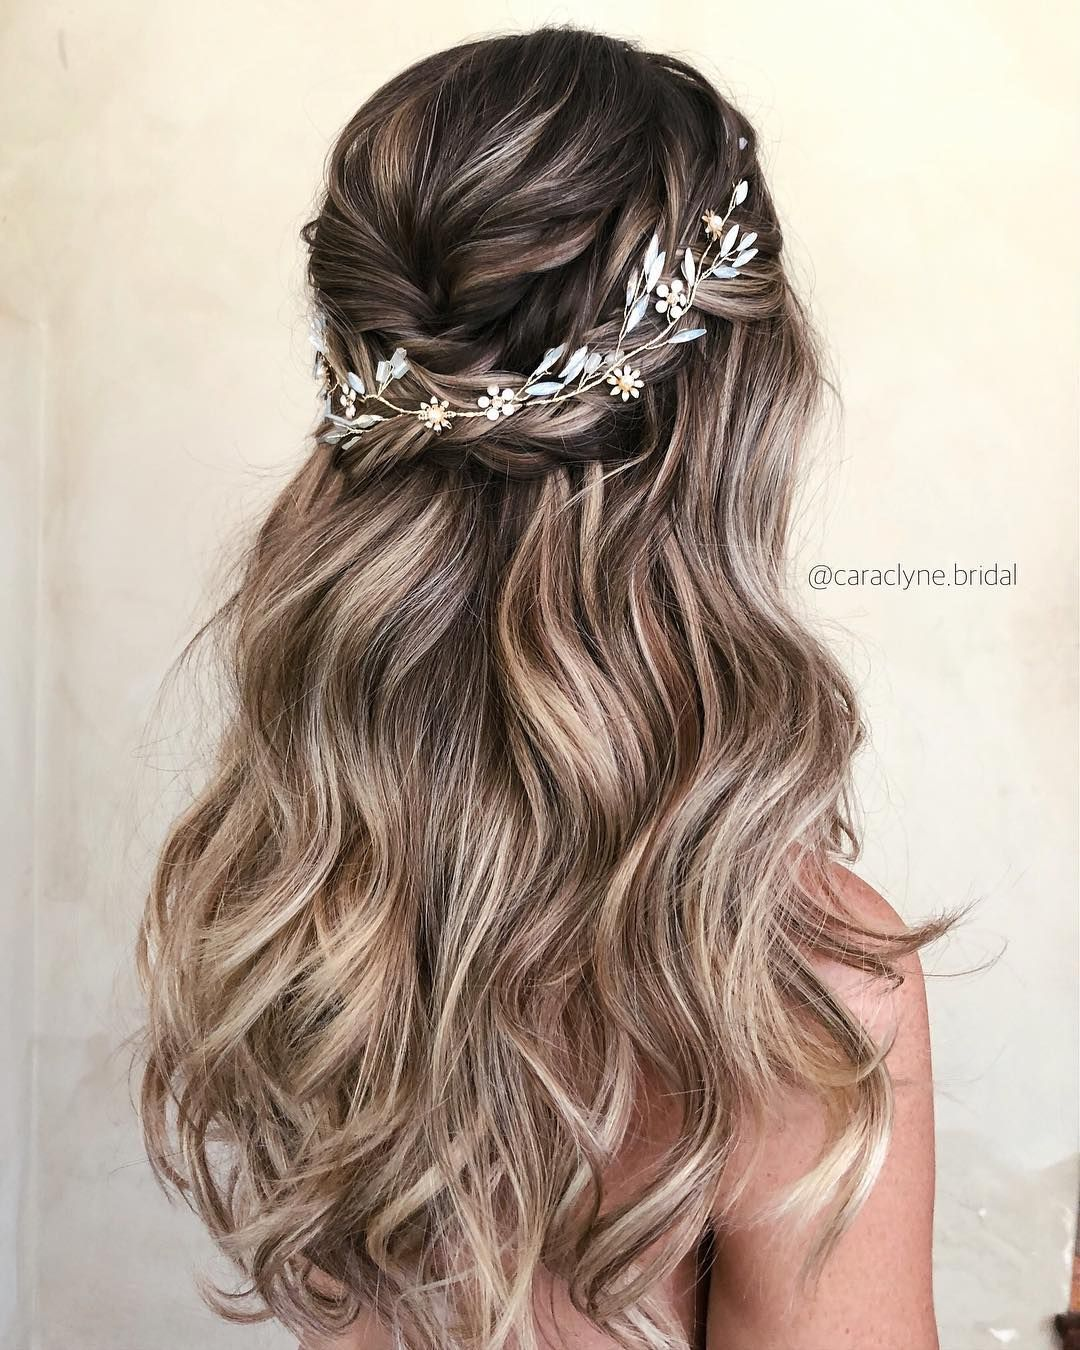 30 Stunning Wedding Hairstyles Ideas In 2019: #caraclyne.bridal My Beautiful Bride Today Kat ️💕 ️💕 We